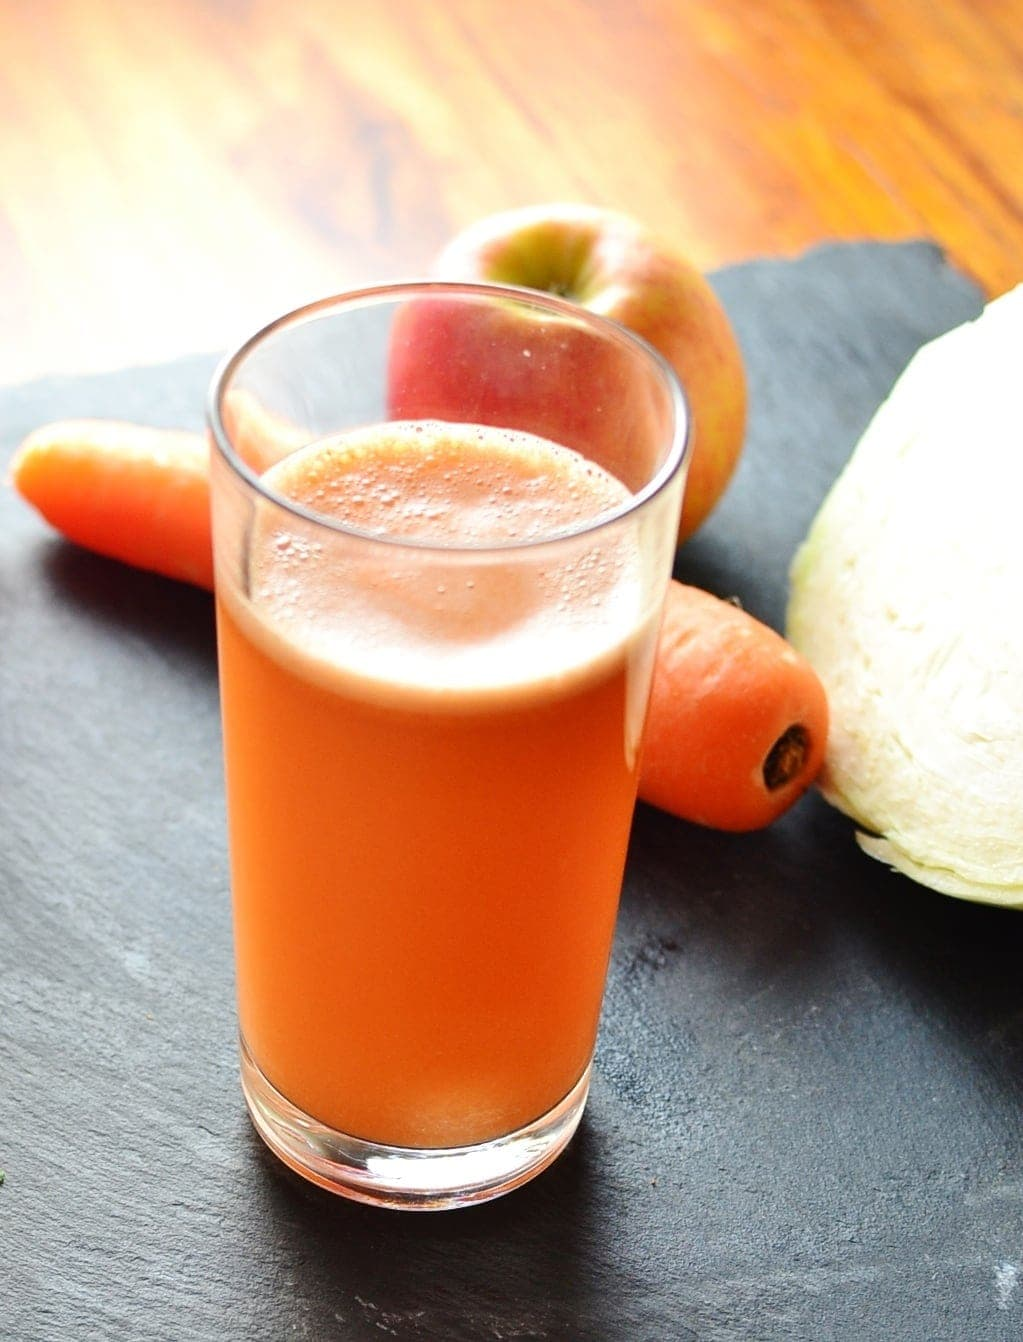 Cabbage juice in glass with carrot and apple on slate surface.